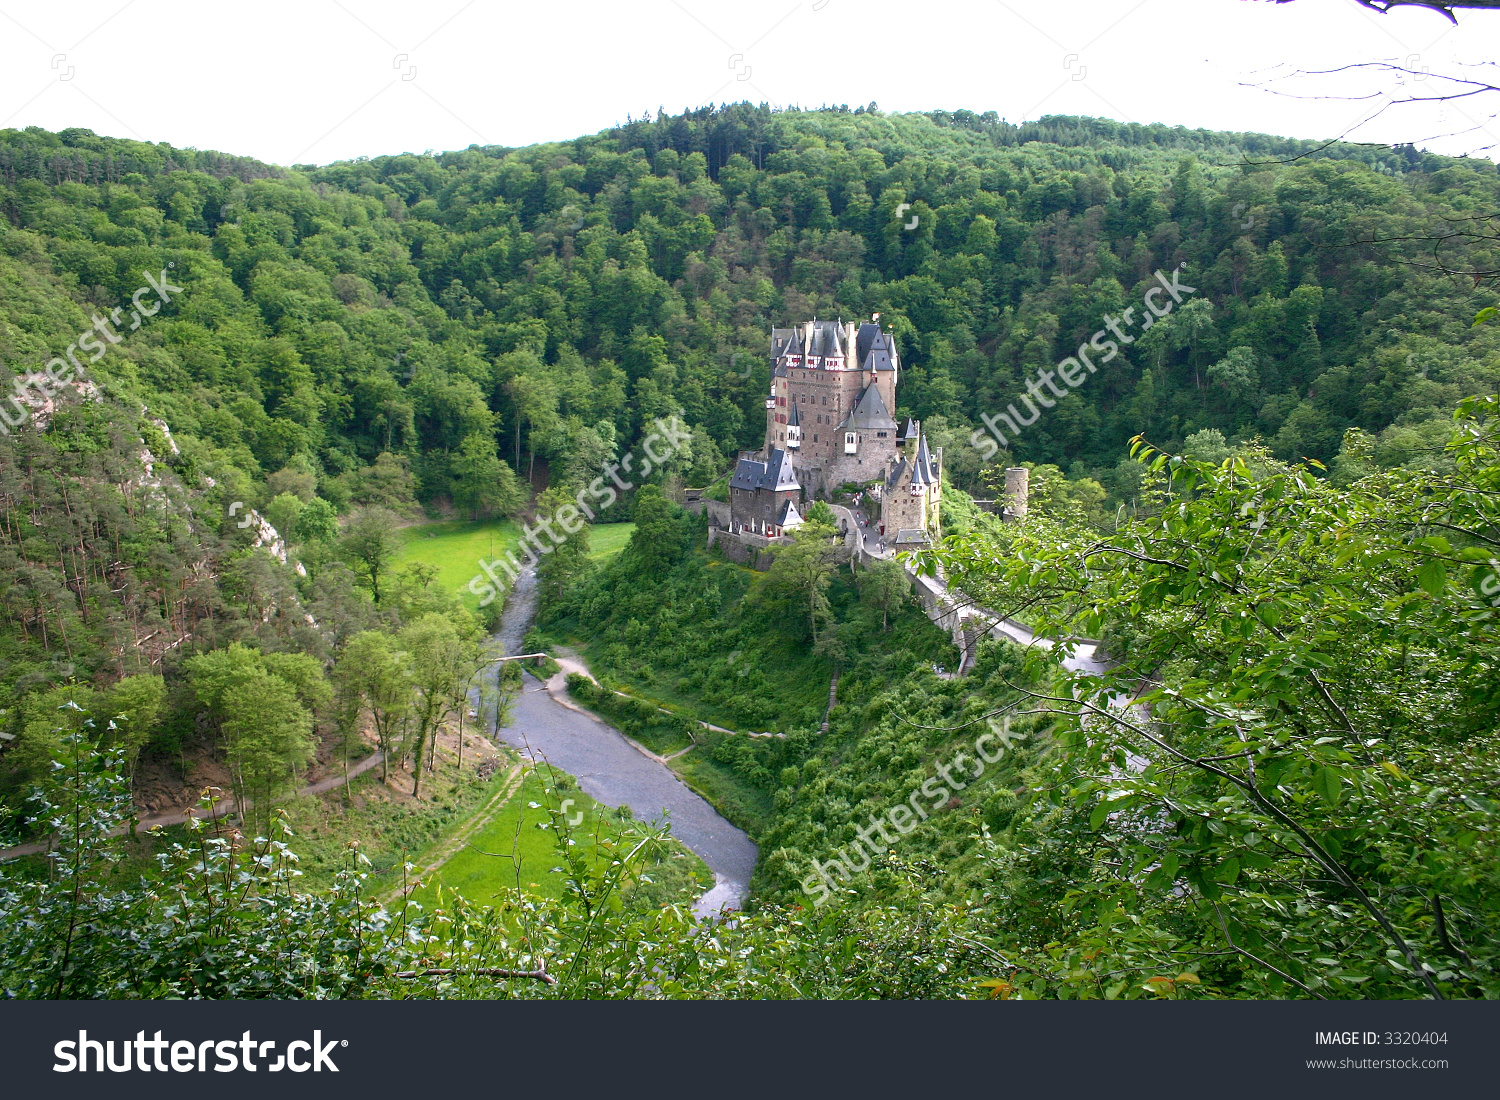 Old Castle Rhine River Valley Germany Stock Photo 3320404.